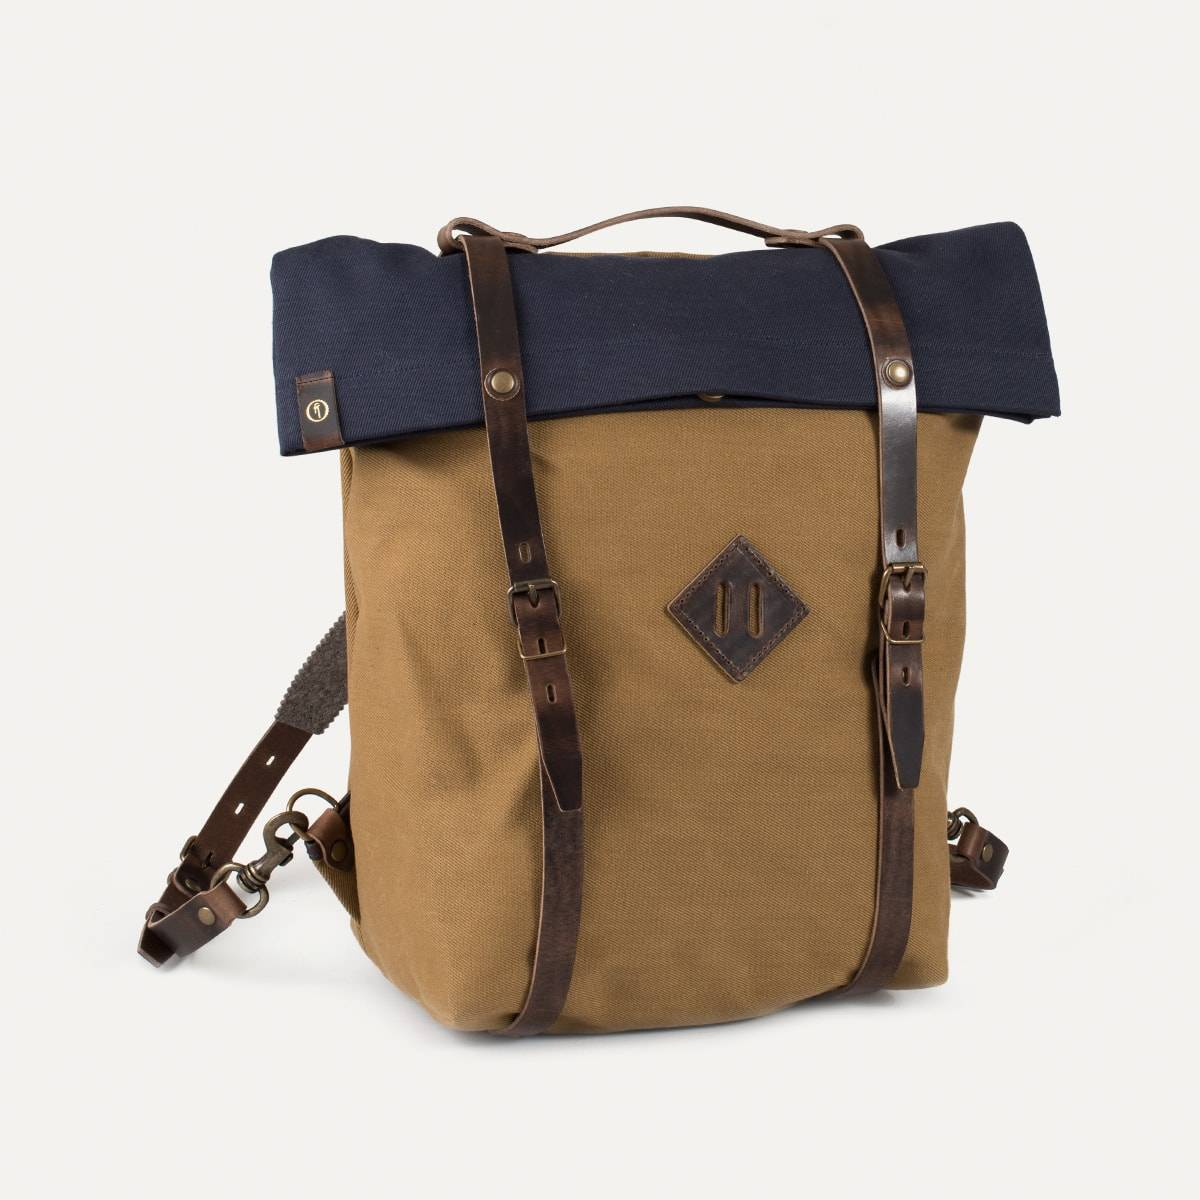 Blitz Motorcycles Scout Backpack - Navy/Camel (image n°2)